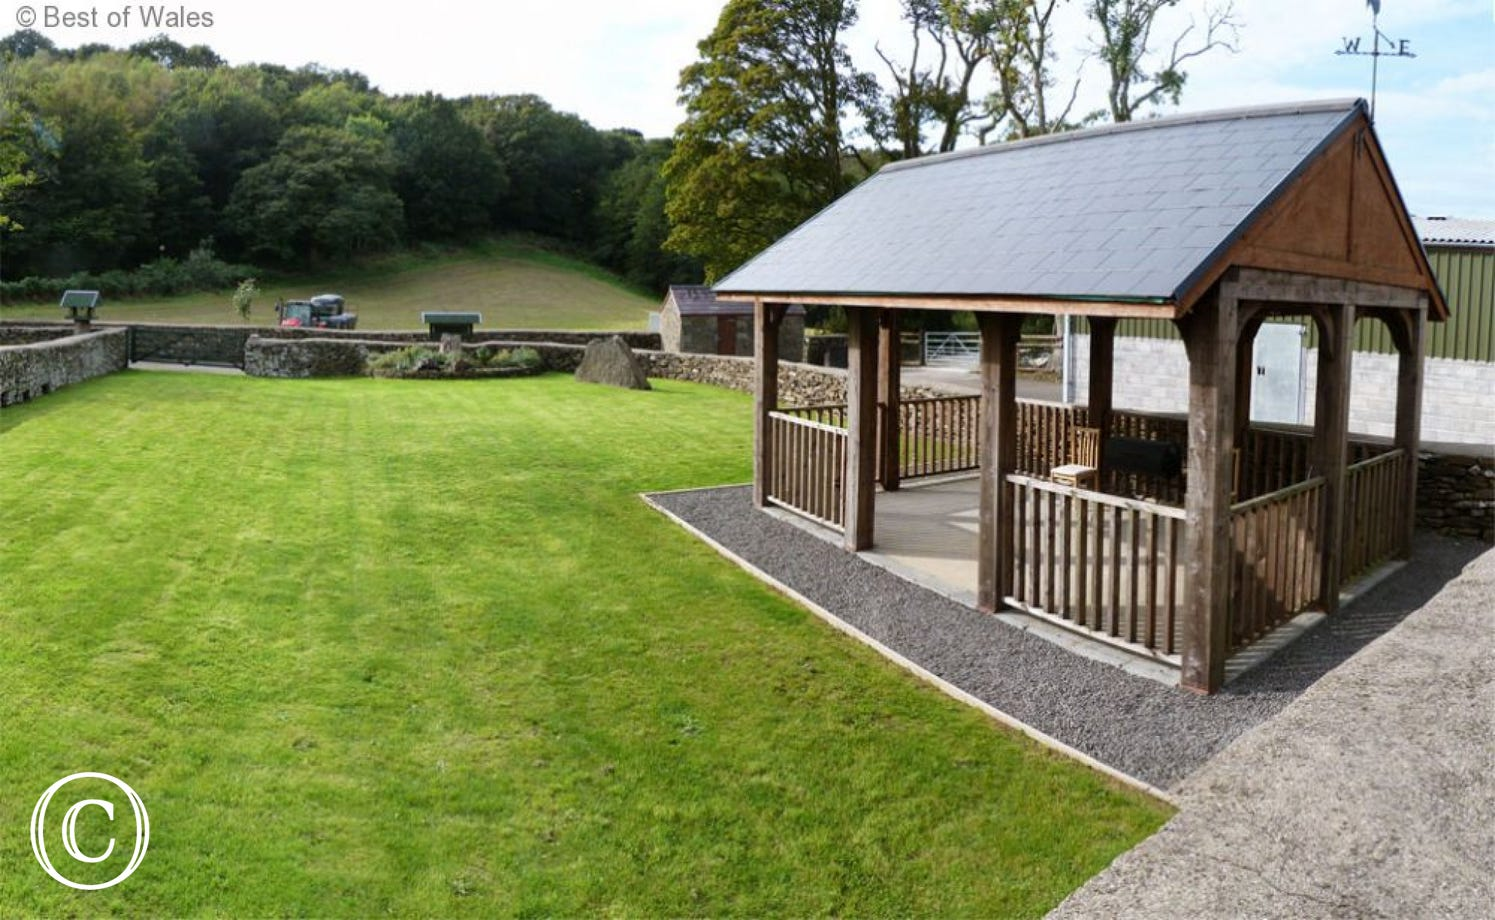 Wodden Gazebo and BBQ area -Ysgubor Tawe